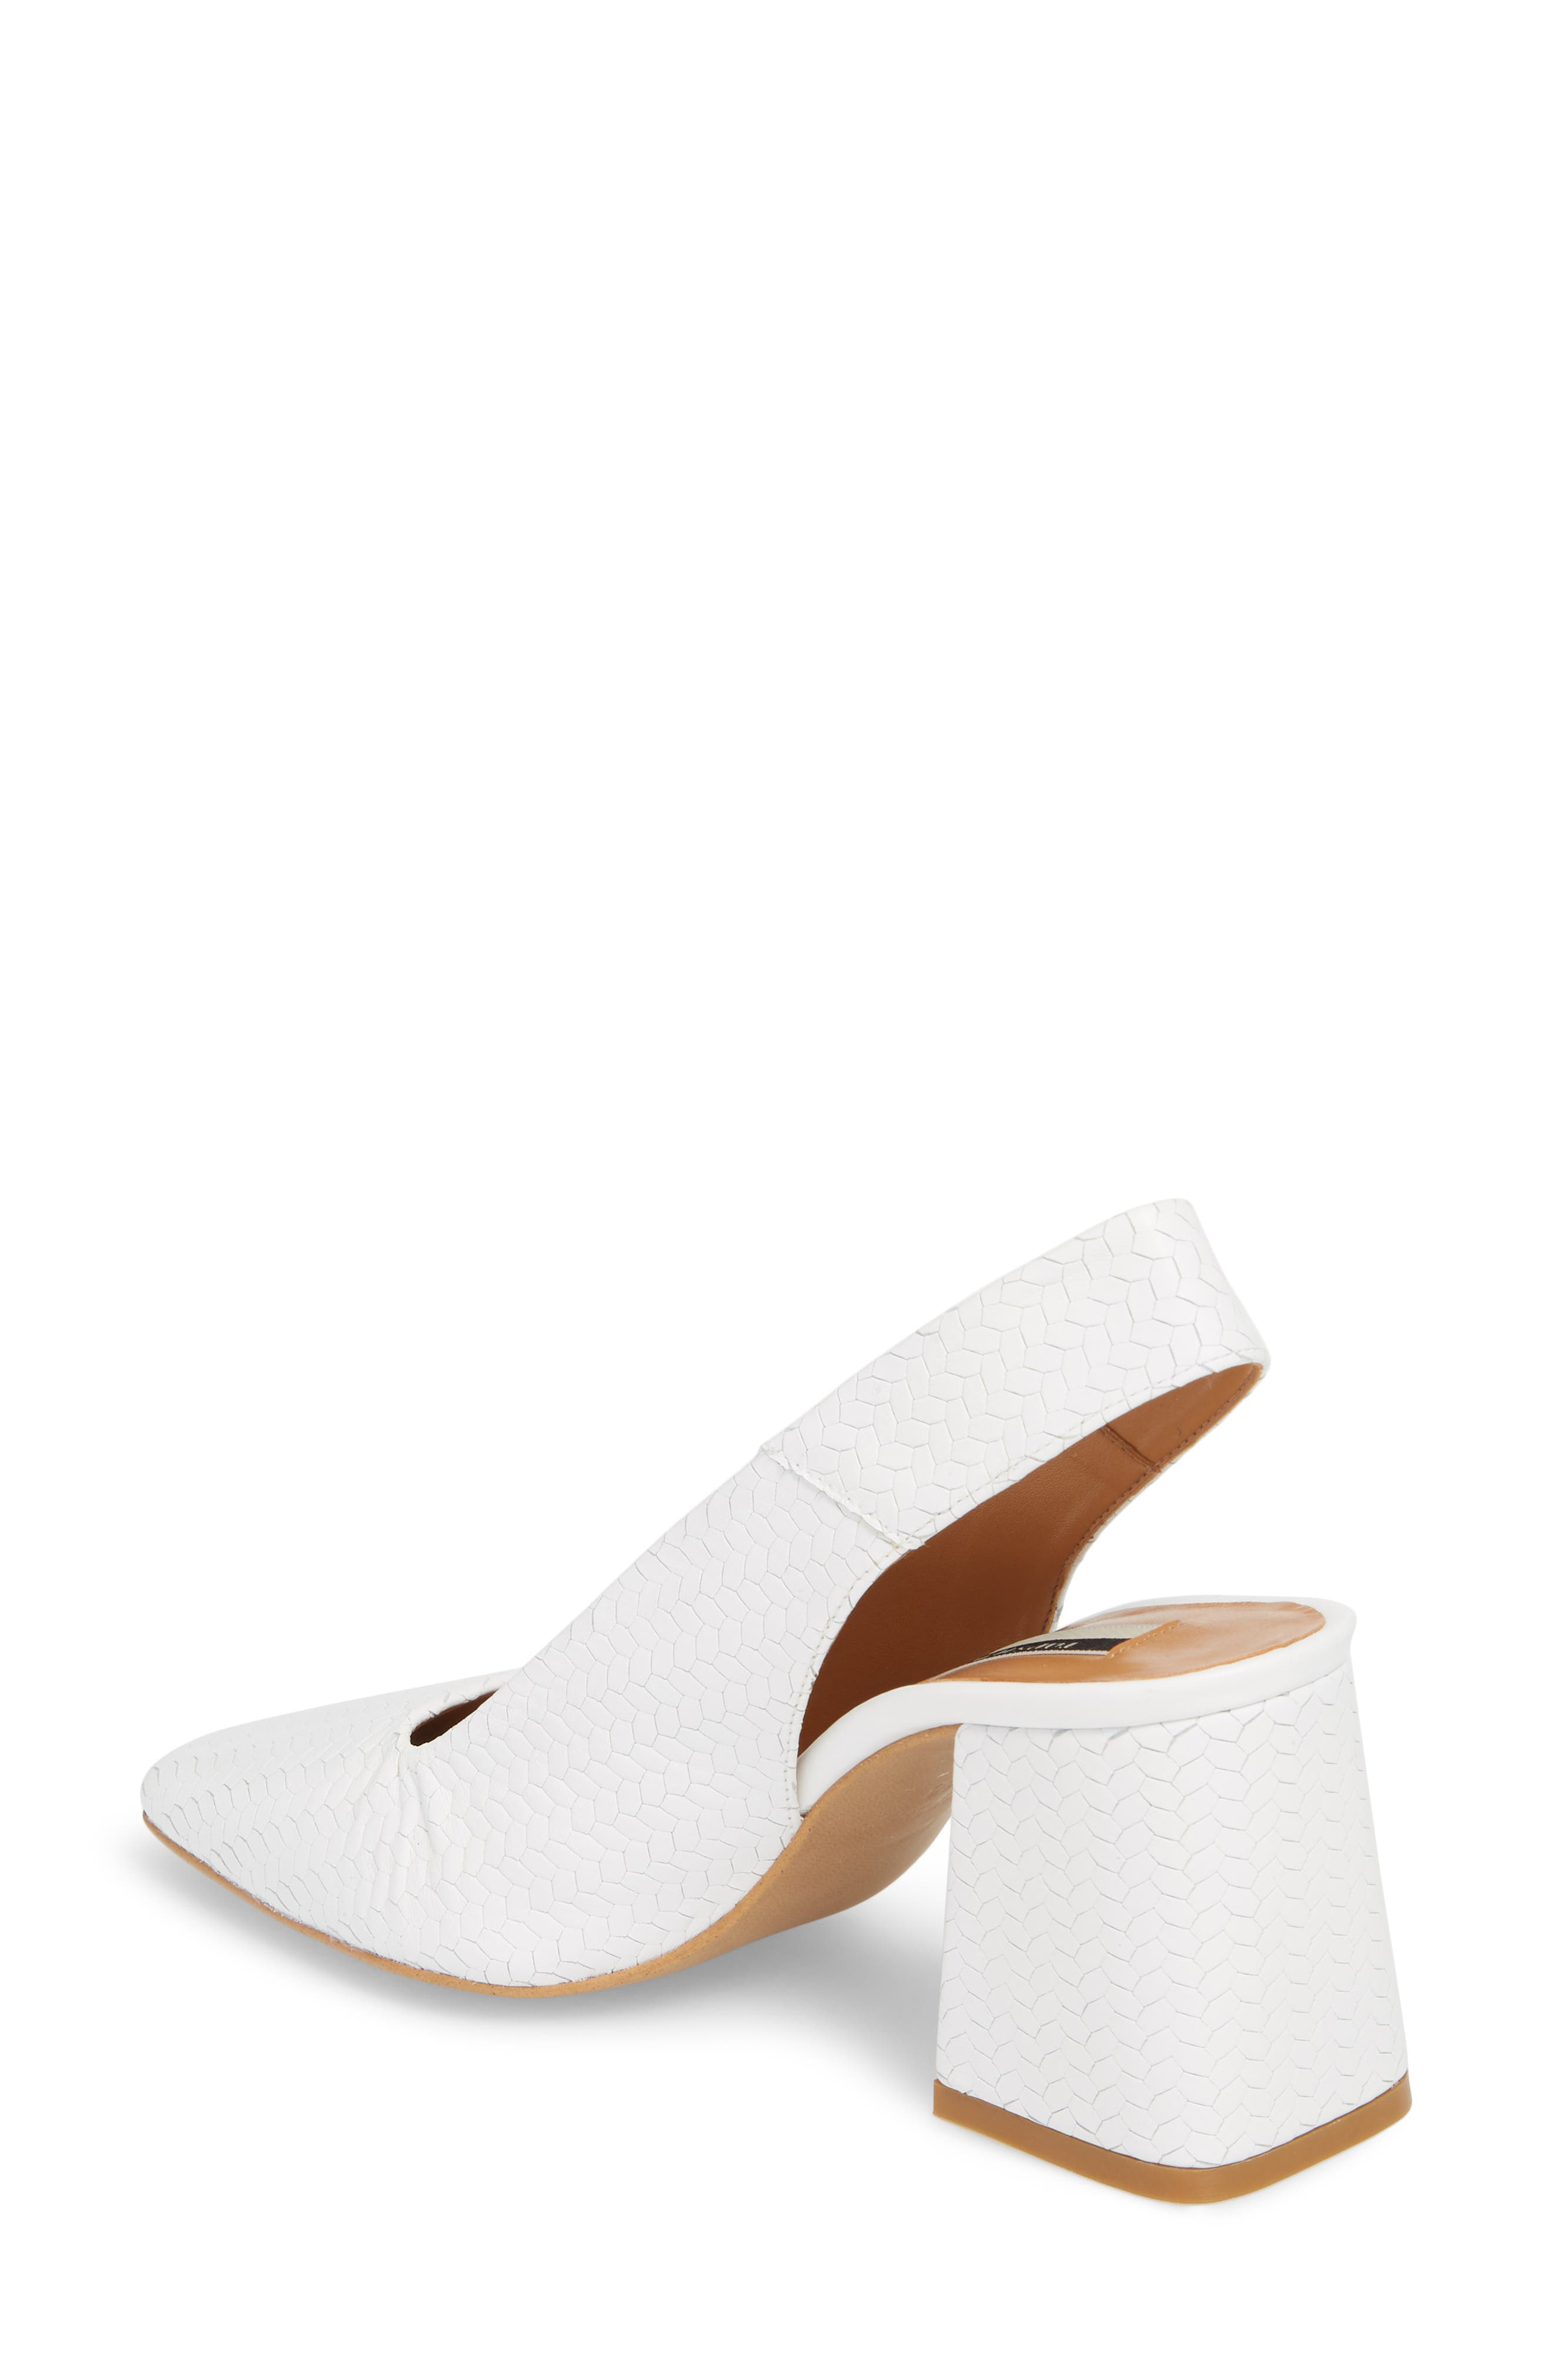 Gainor Block Heel Slingback Pump,                             Alternate thumbnail 2, color,                             White